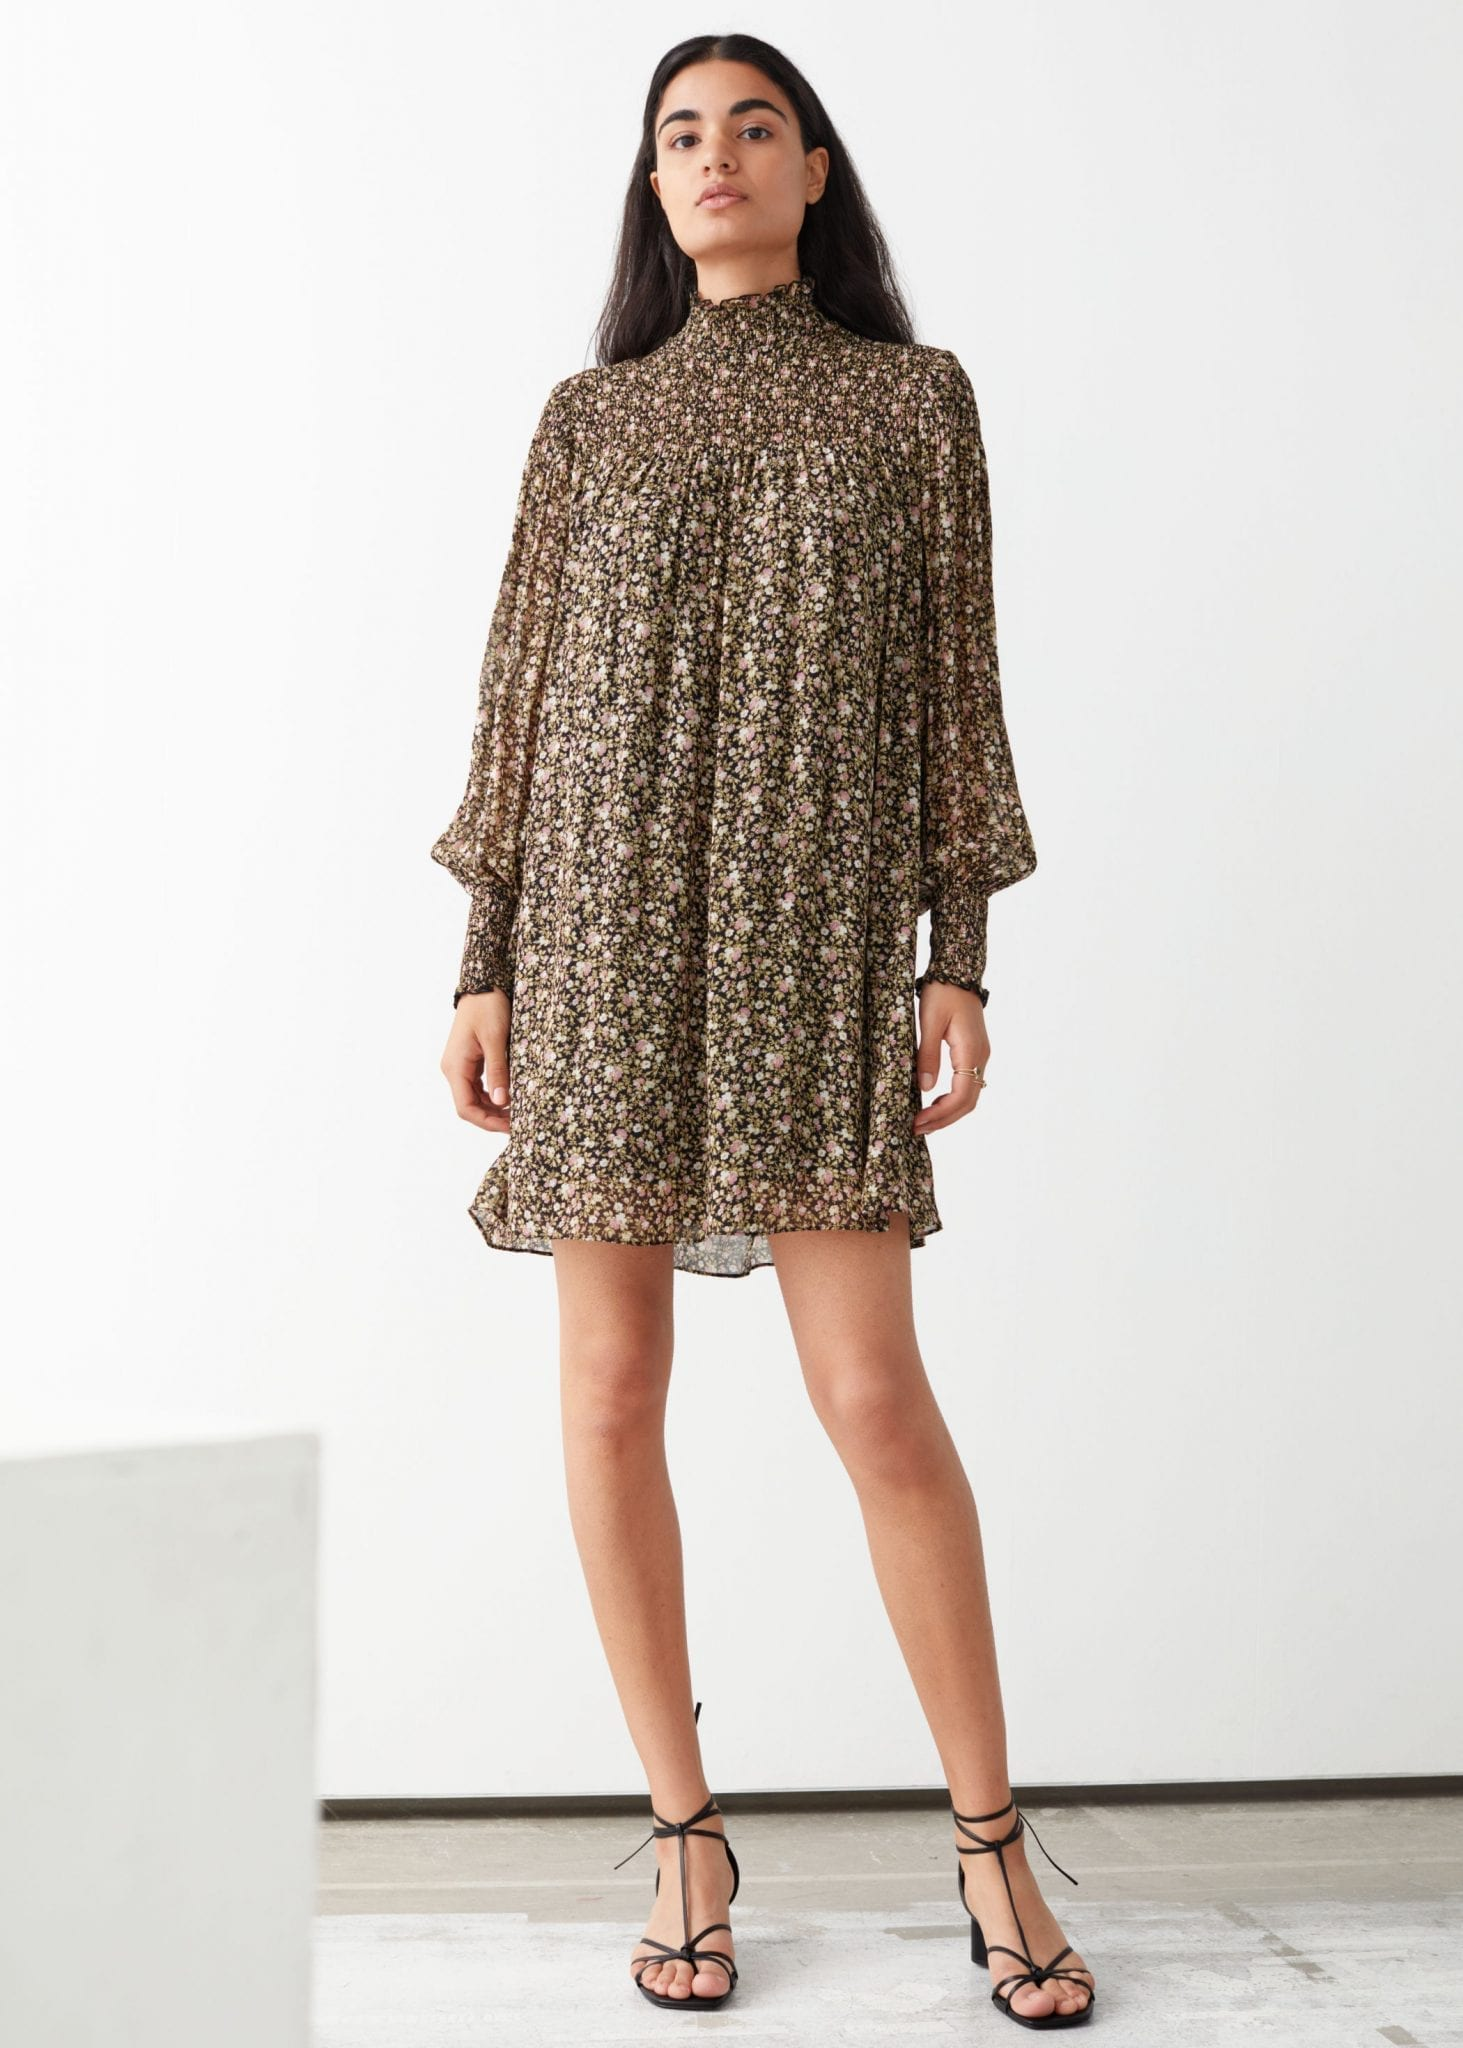 & OTHER STORIES Sheer Smocked Mini Dress